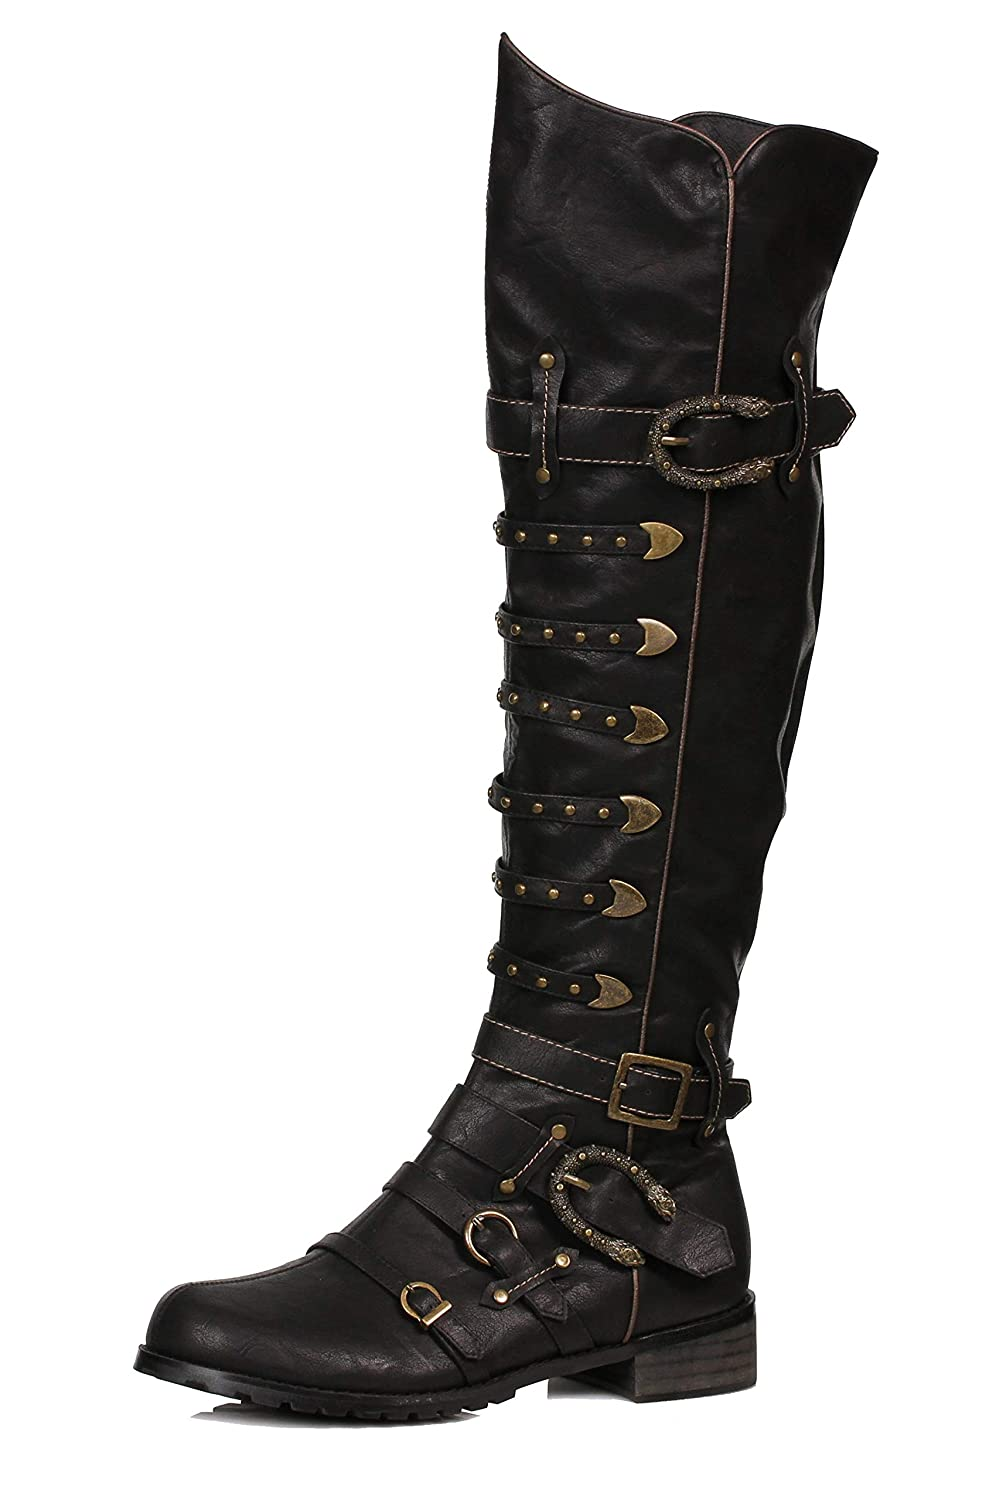 Steampunk Boots and Shoes for Men Ellie Shoes Mens 158-Wilbur Steampunk Costume Boots $124.00 AT vintagedancer.com